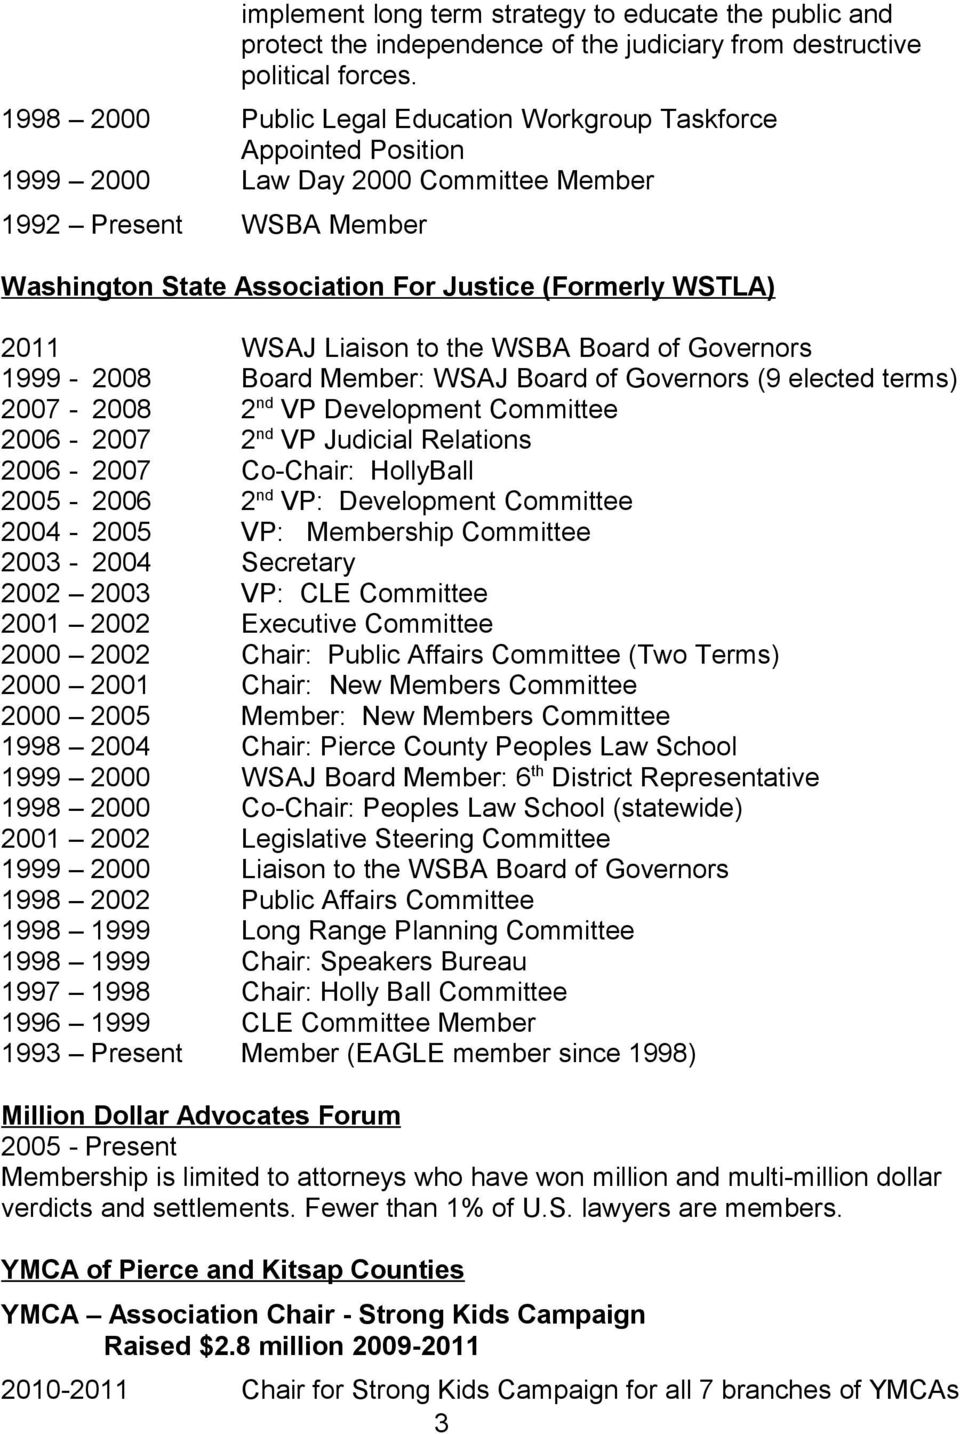 WSAJ Liaison to the WSBA Board of Governors 1999-2008 Board Member: WSAJ Board of Governors (9 elected terms) 2007-2008 2 nd VP Development Committee 2006-2007 2 nd VP Judicial Relations 2006-2007